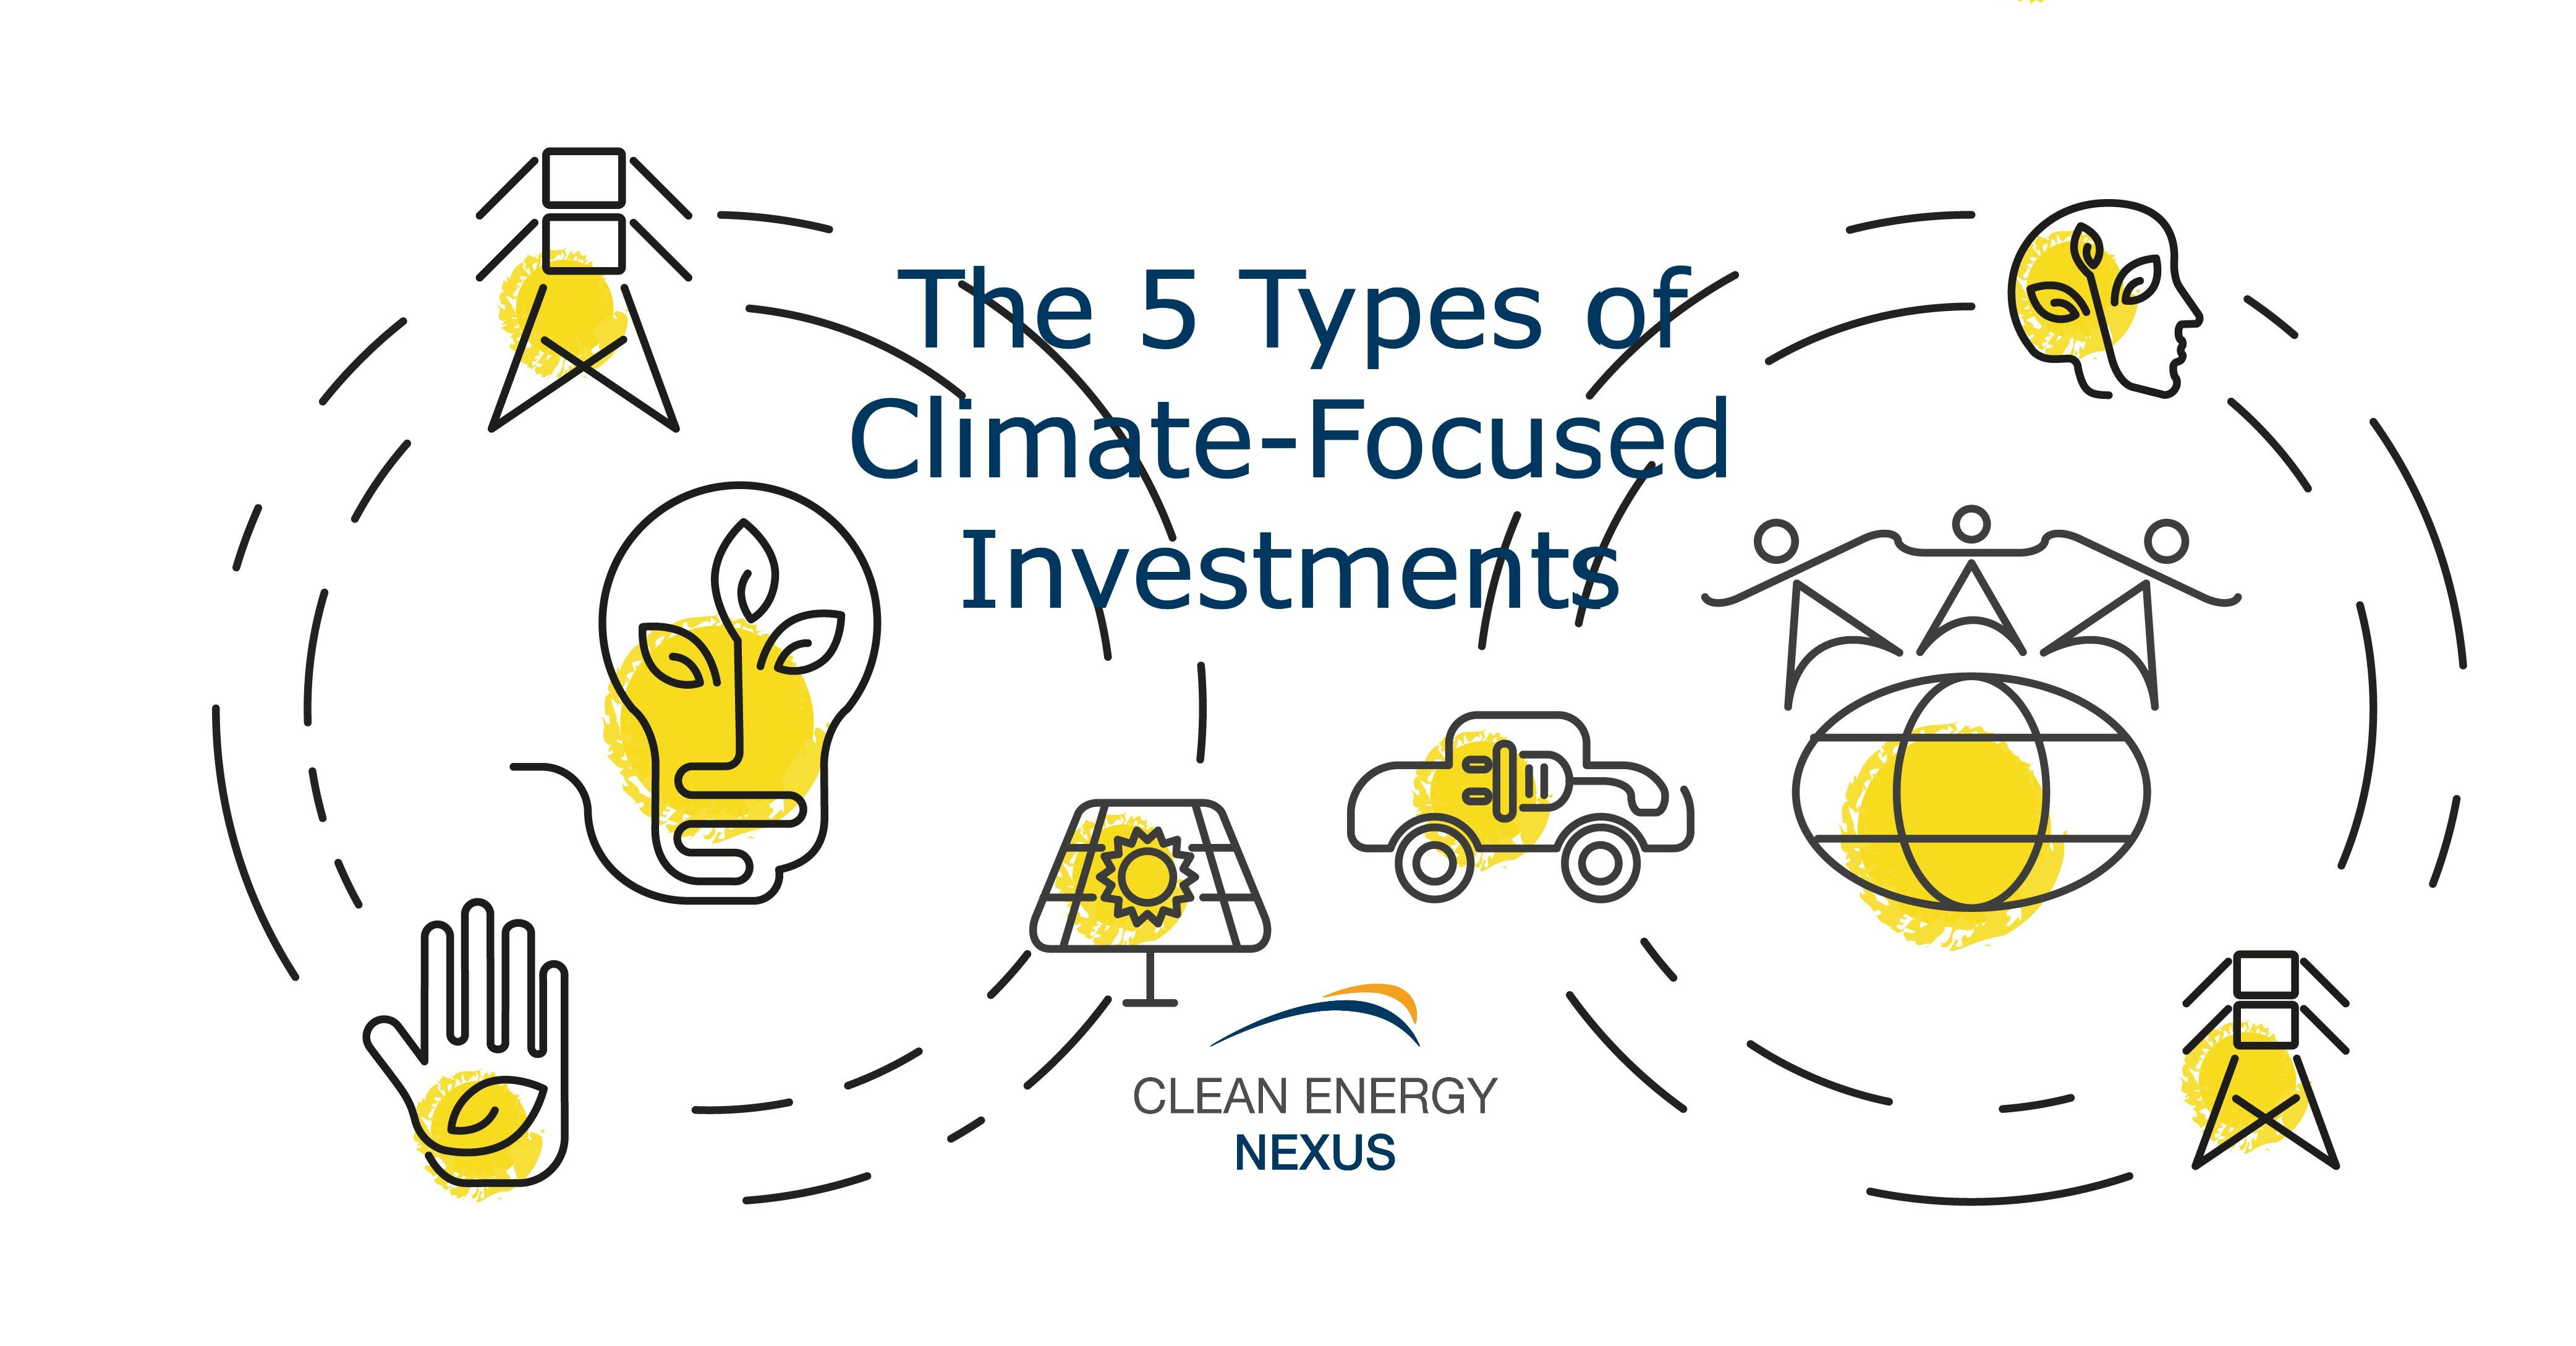 The 5 Types of Climate-Focused Investments